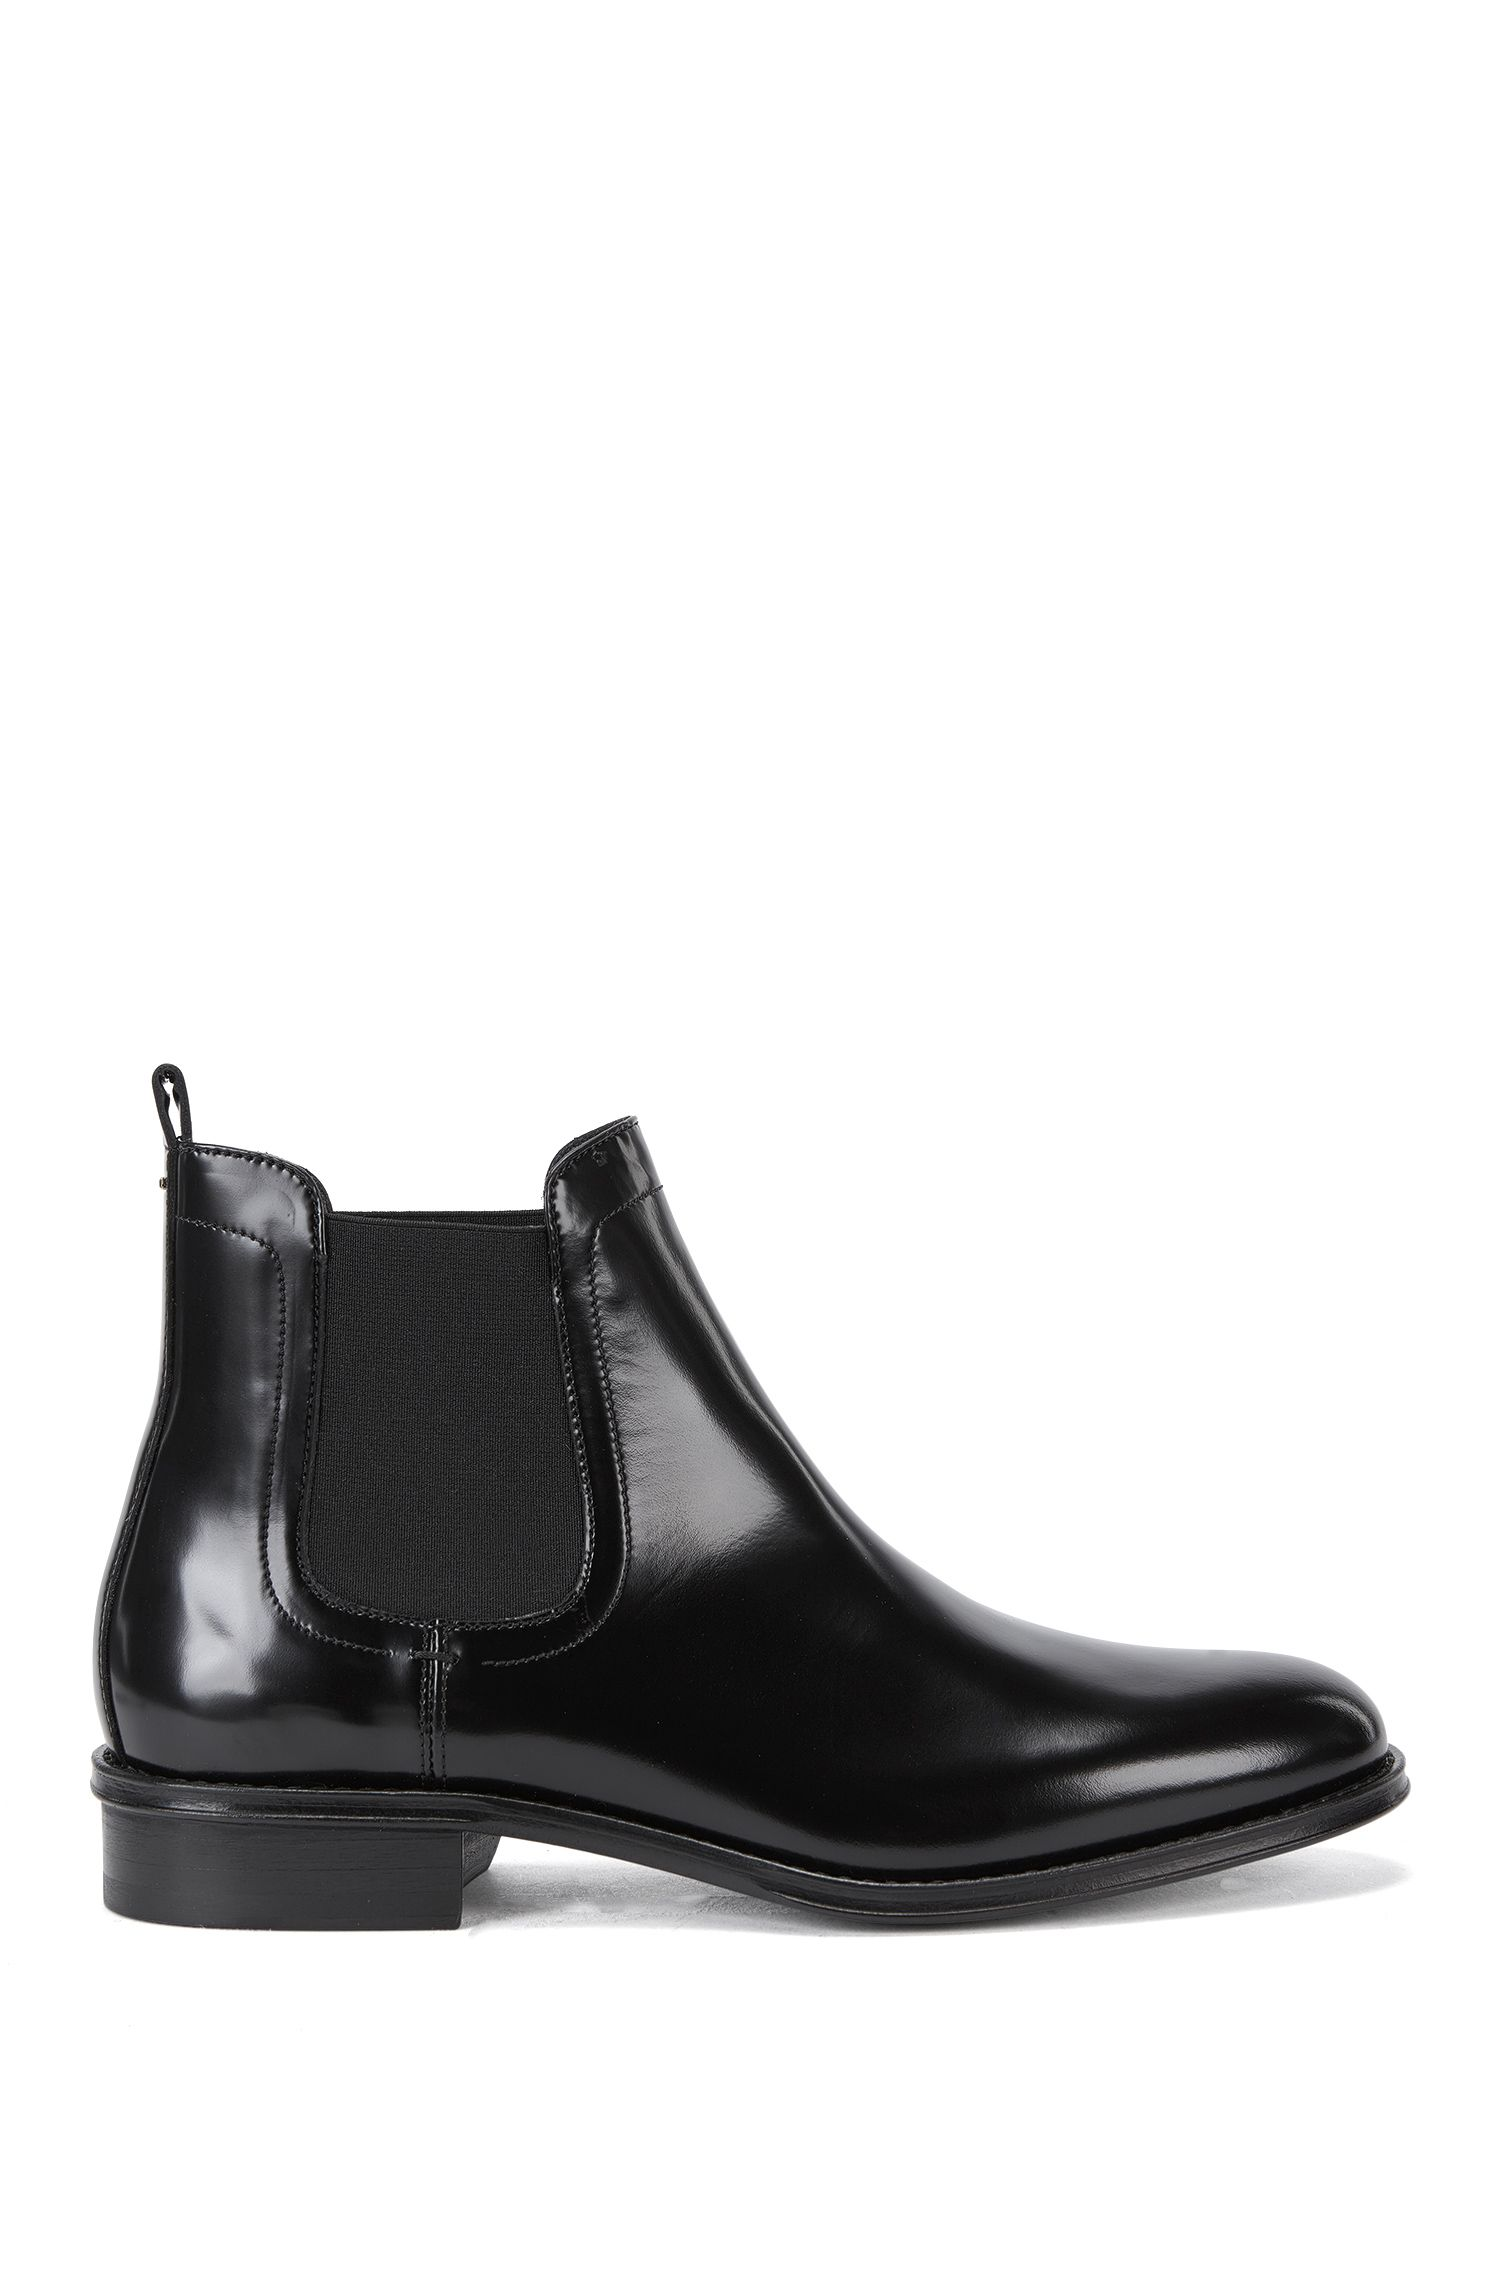 Bottines Chelsea contemporaines en cuir italien